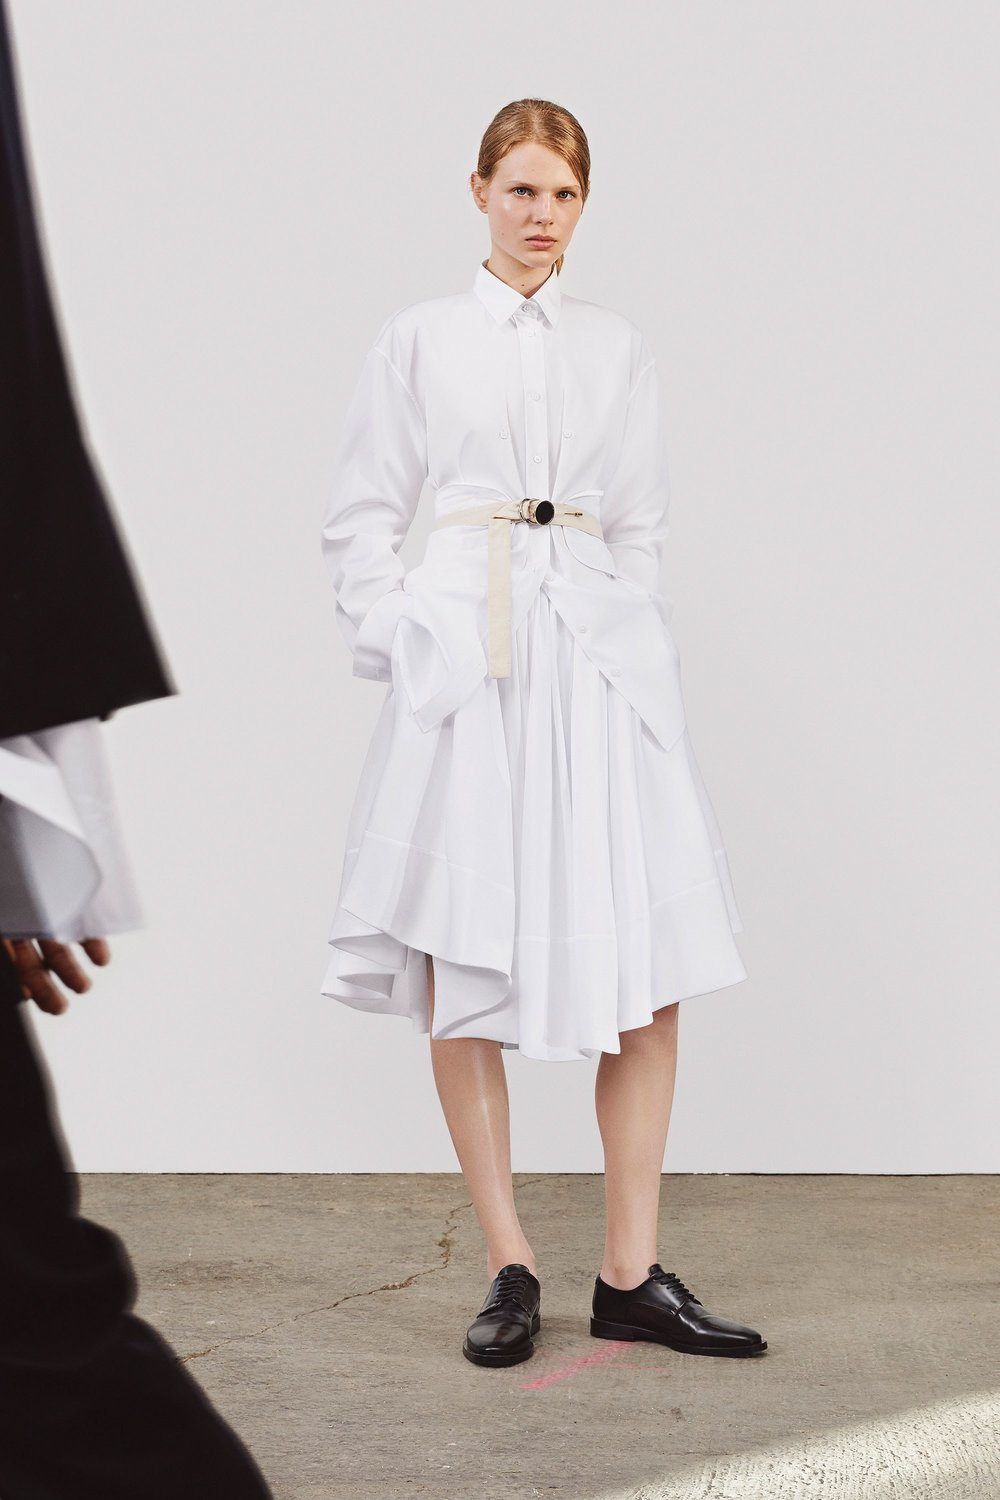 02-Jil-Sander-Resort-18.jpg